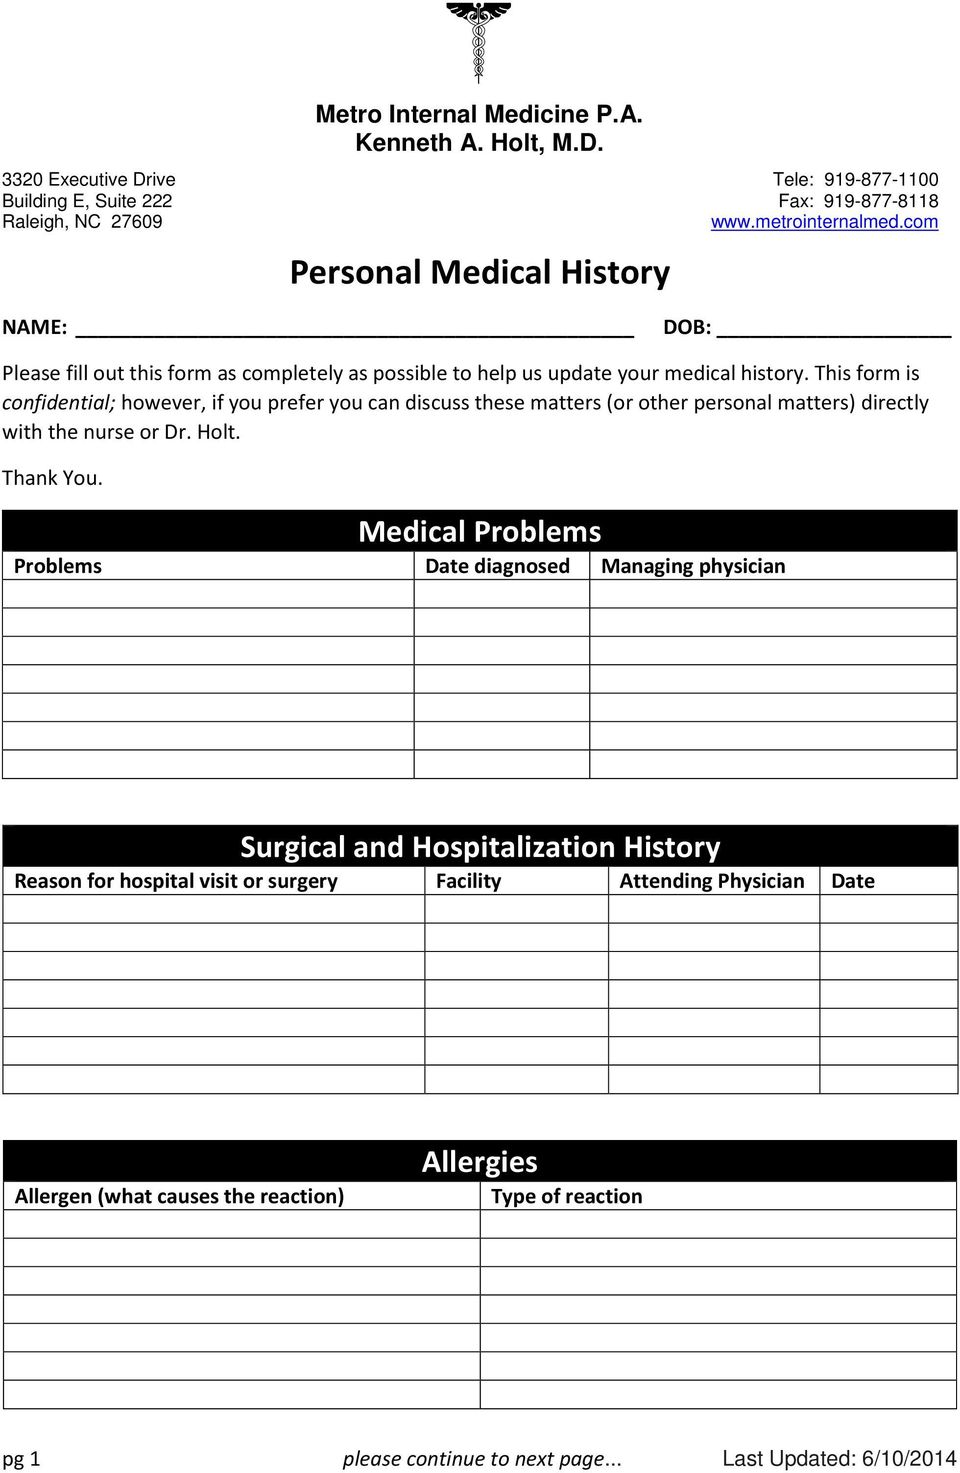 This form is confidential; however, if you prefer you can discuss these matters (or other personal matters) directly with the nurse or Dr. Holt. Thank You.